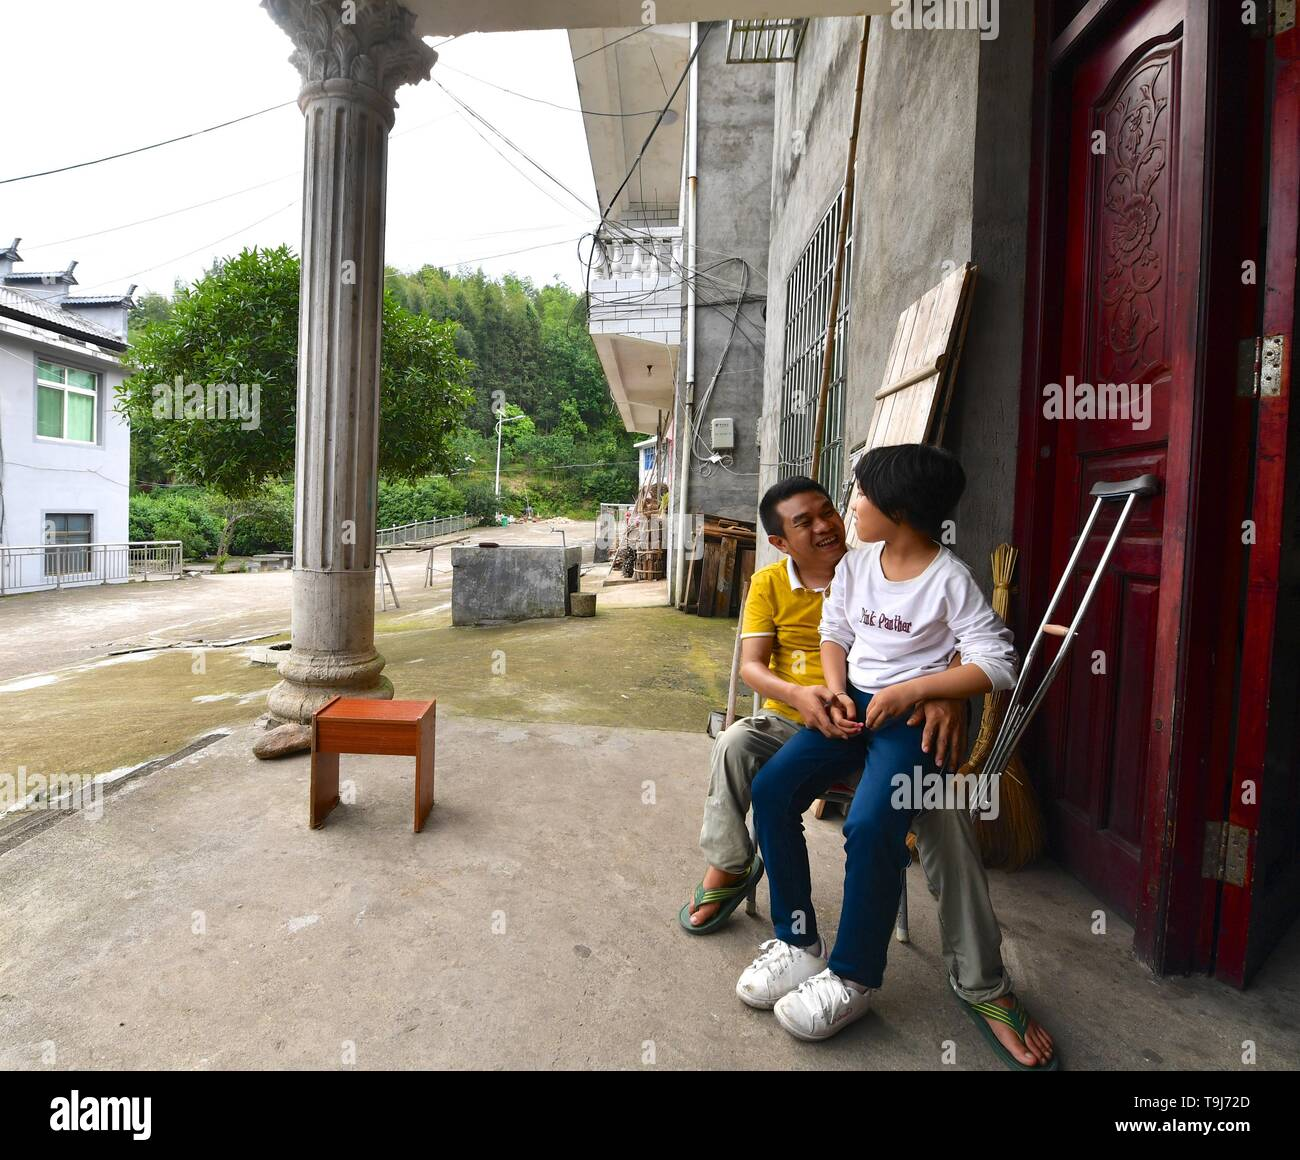 (190519) -- NANCHANG, May 19, 2019 (Xinhua) -- Lin Fusheng (L) chats with his daughter in front of their home in Lichuan County, east China's Jiangxi Province, May 16, 2019. Lin Fusheng, a villager from Hualian Village of Huashan Township in Lichuan County, suffered from physical disability because of infantile paralysis. Despite that, Lin stuck with his dream of becoming a painter.      As Lichuan County witnessed rapid development of oil painting industry in 2013, Lin returned to his hometown and grew as a professional painter with the help of local government. Now Lin owns a studio at an oi - Stock Image